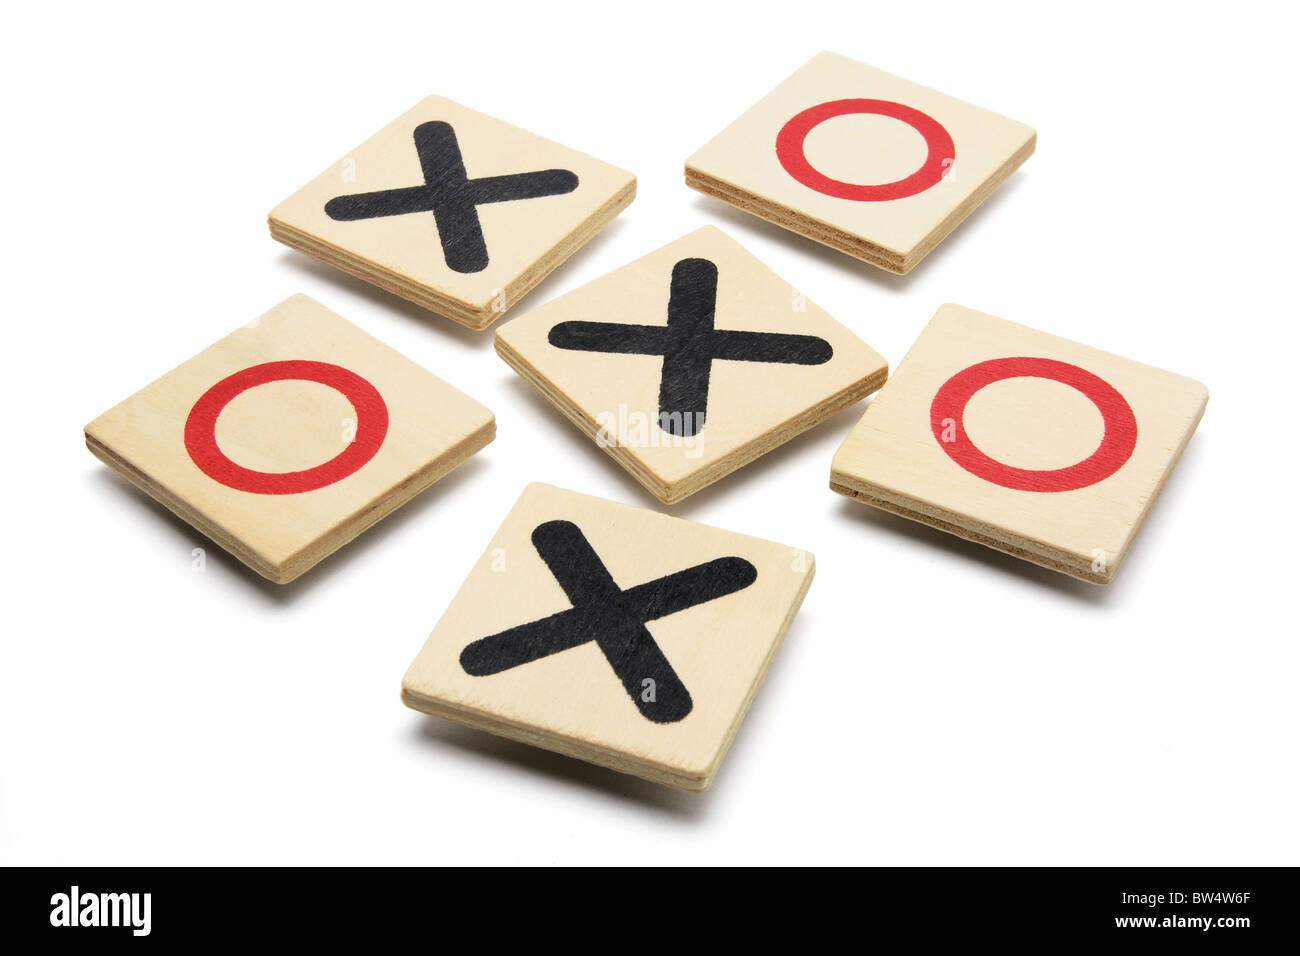 Tic-Tac-Toe Game Stock Photo